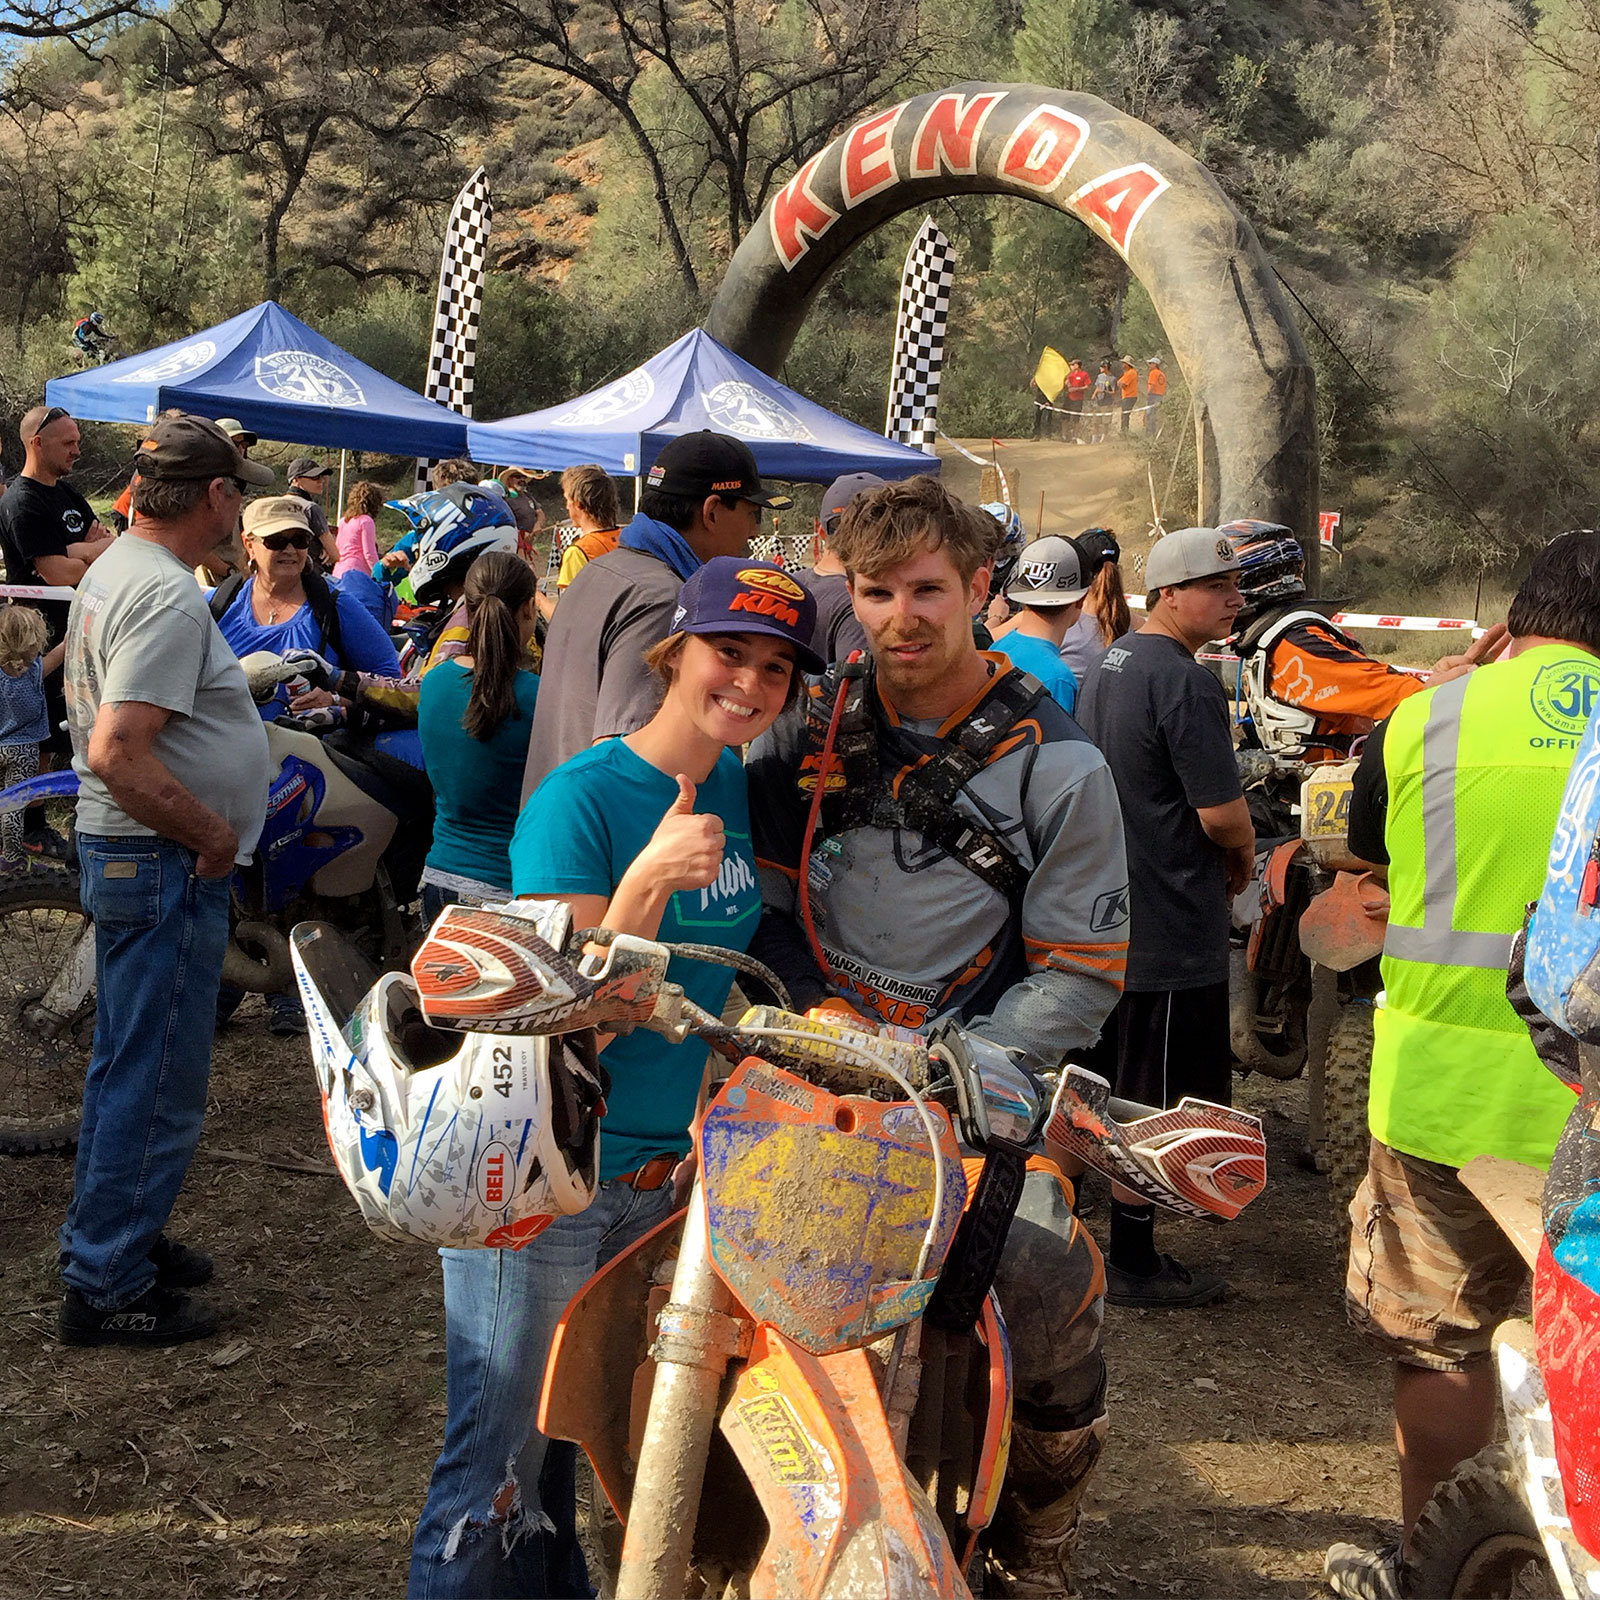 Fast couple: both Kacy and husband Travis Coy race off-road at the highest level and and live the off-road life together by riding, training, and racing as a team. Photo: Kacy Martinez.